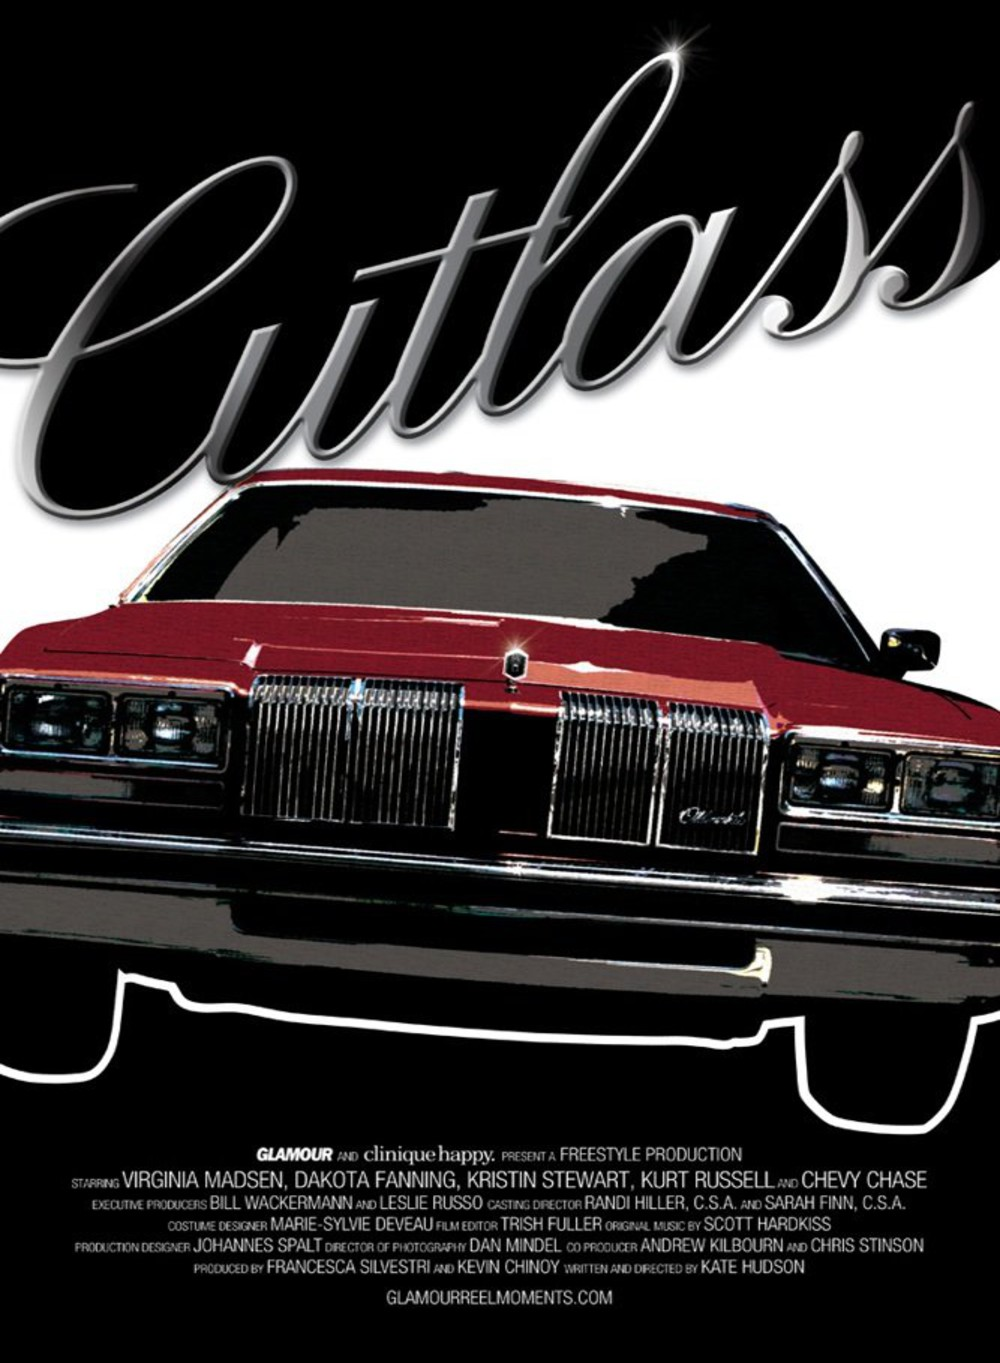 affiche du film Cutlass